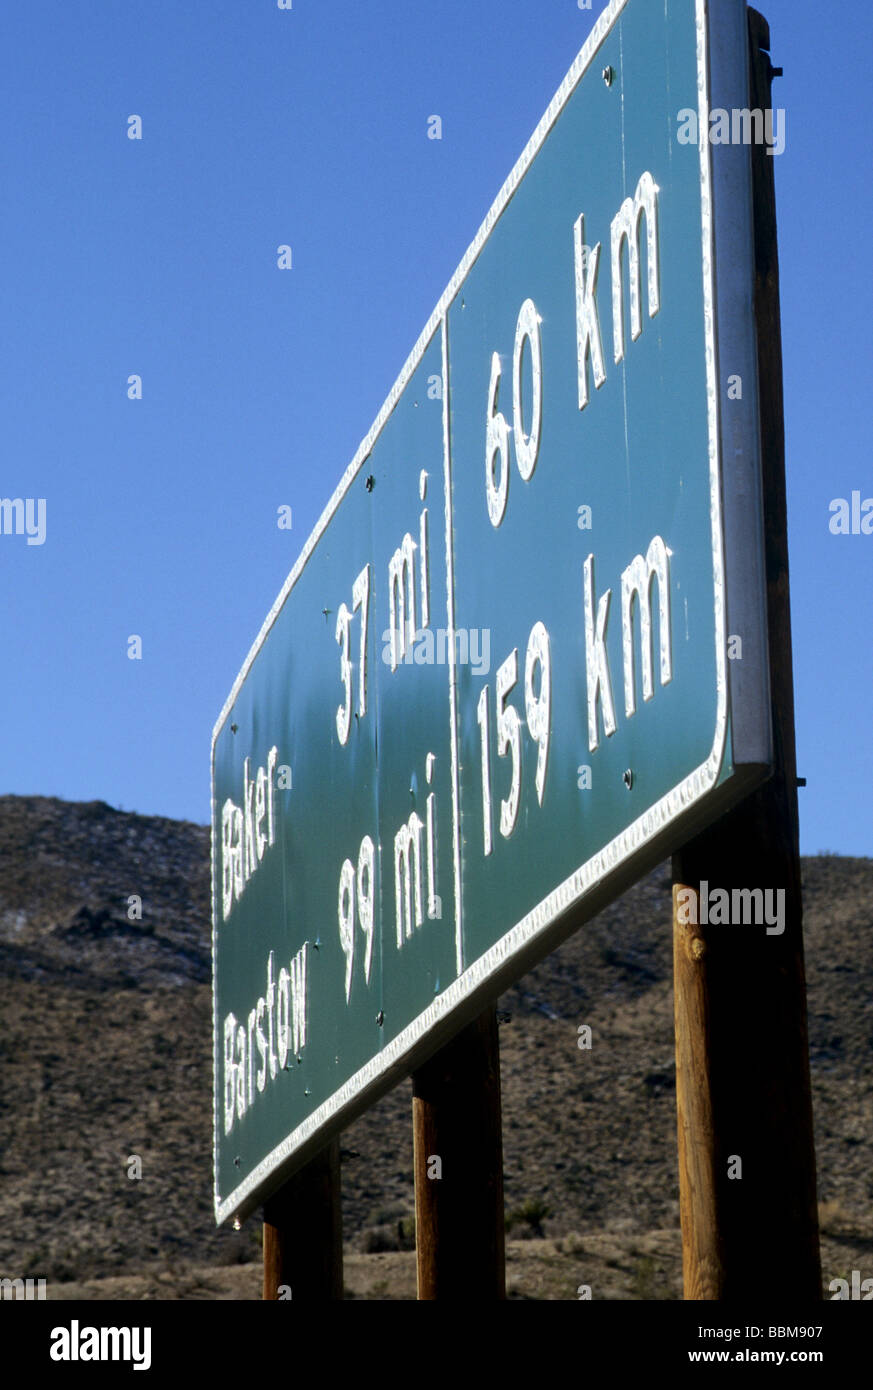 mile km kilometer sign highway mileage distance road measure metric us - Stock Image